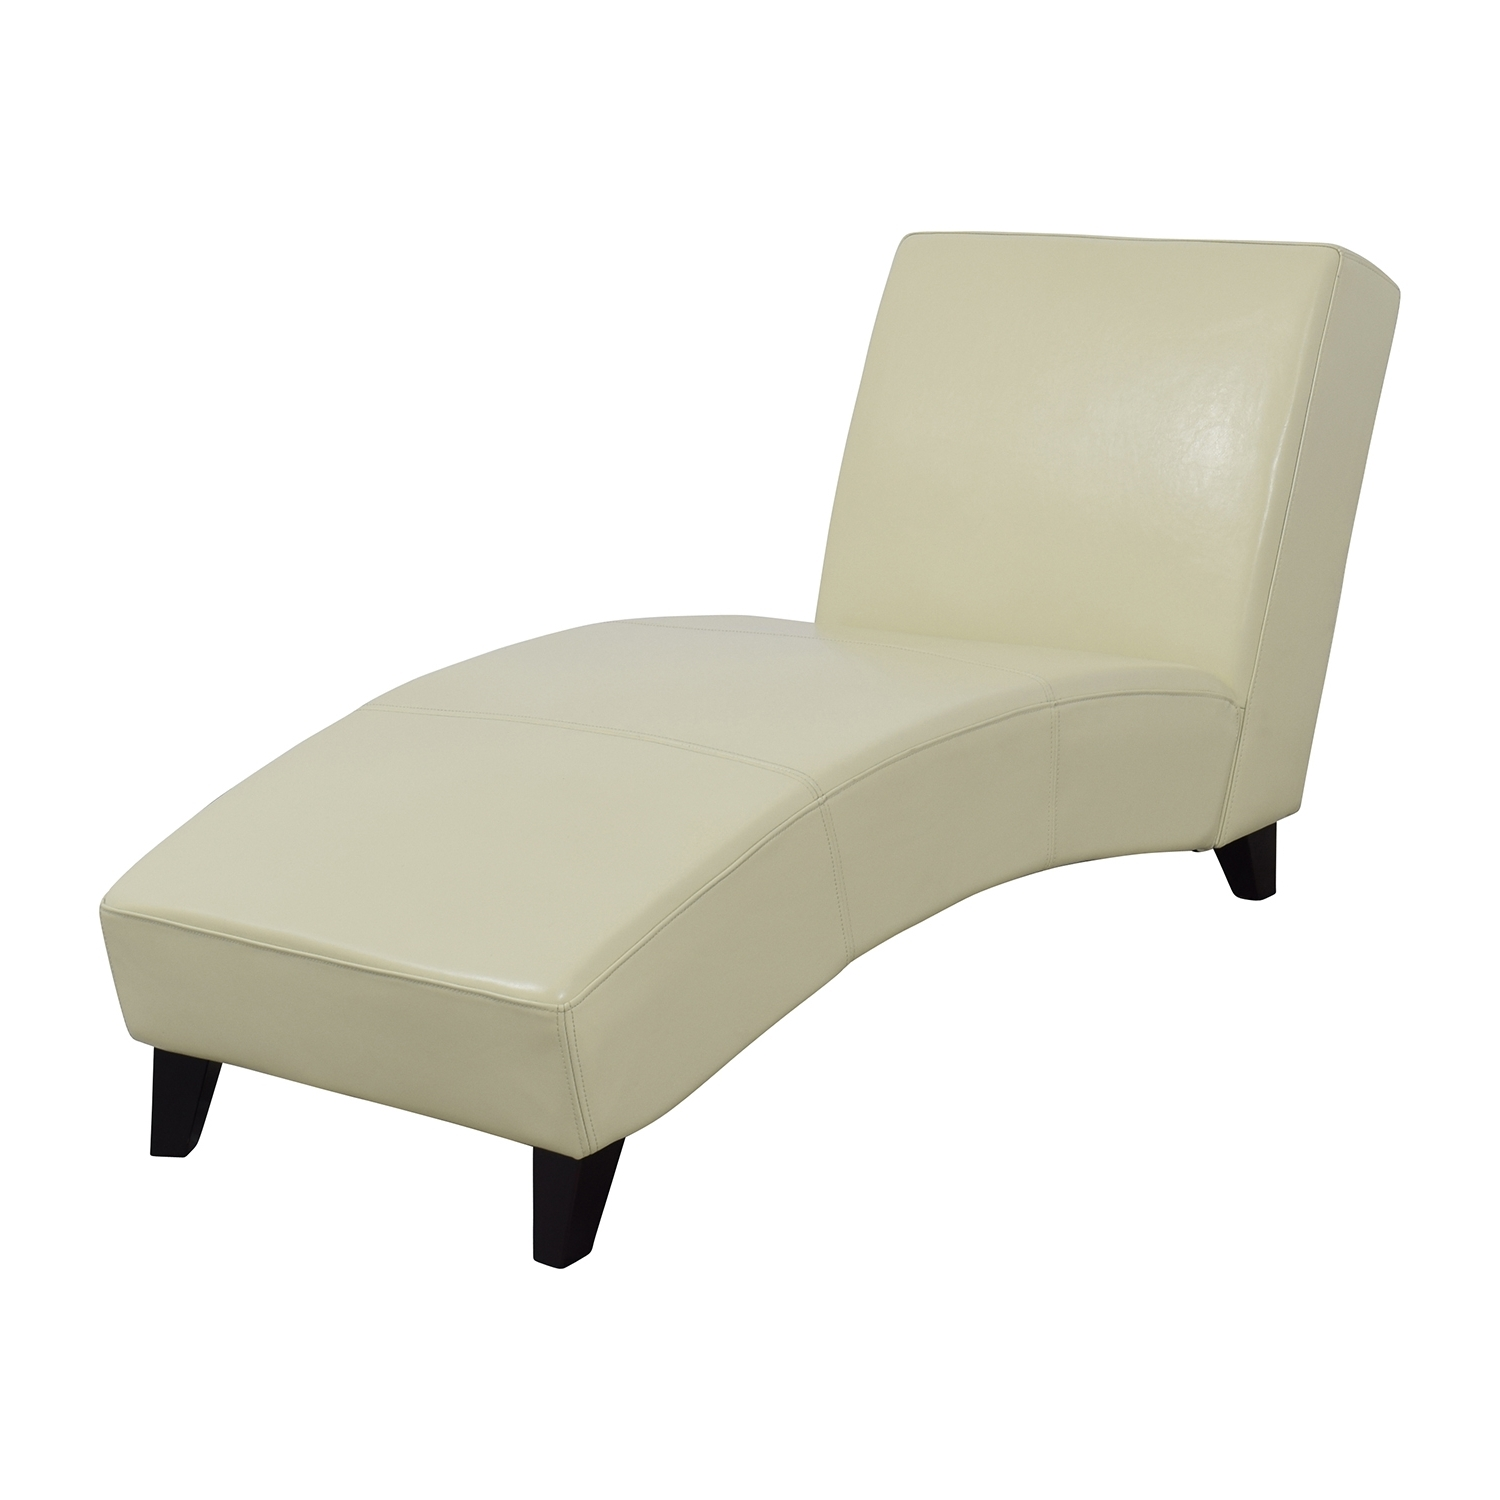 [%90% Off – Wayfair Wayfair White Leather Chaise / Sofas Inside Most Recently Released White Leather Chaises|White Leather Chaises With 2018 90% Off – Wayfair Wayfair White Leather Chaise / Sofas|Most Recent White Leather Chaises For 90% Off – Wayfair Wayfair White Leather Chaise / Sofas|Famous 90% Off – Wayfair Wayfair White Leather Chaise / Sofas Pertaining To White Leather Chaises%] (View 1 of 15)